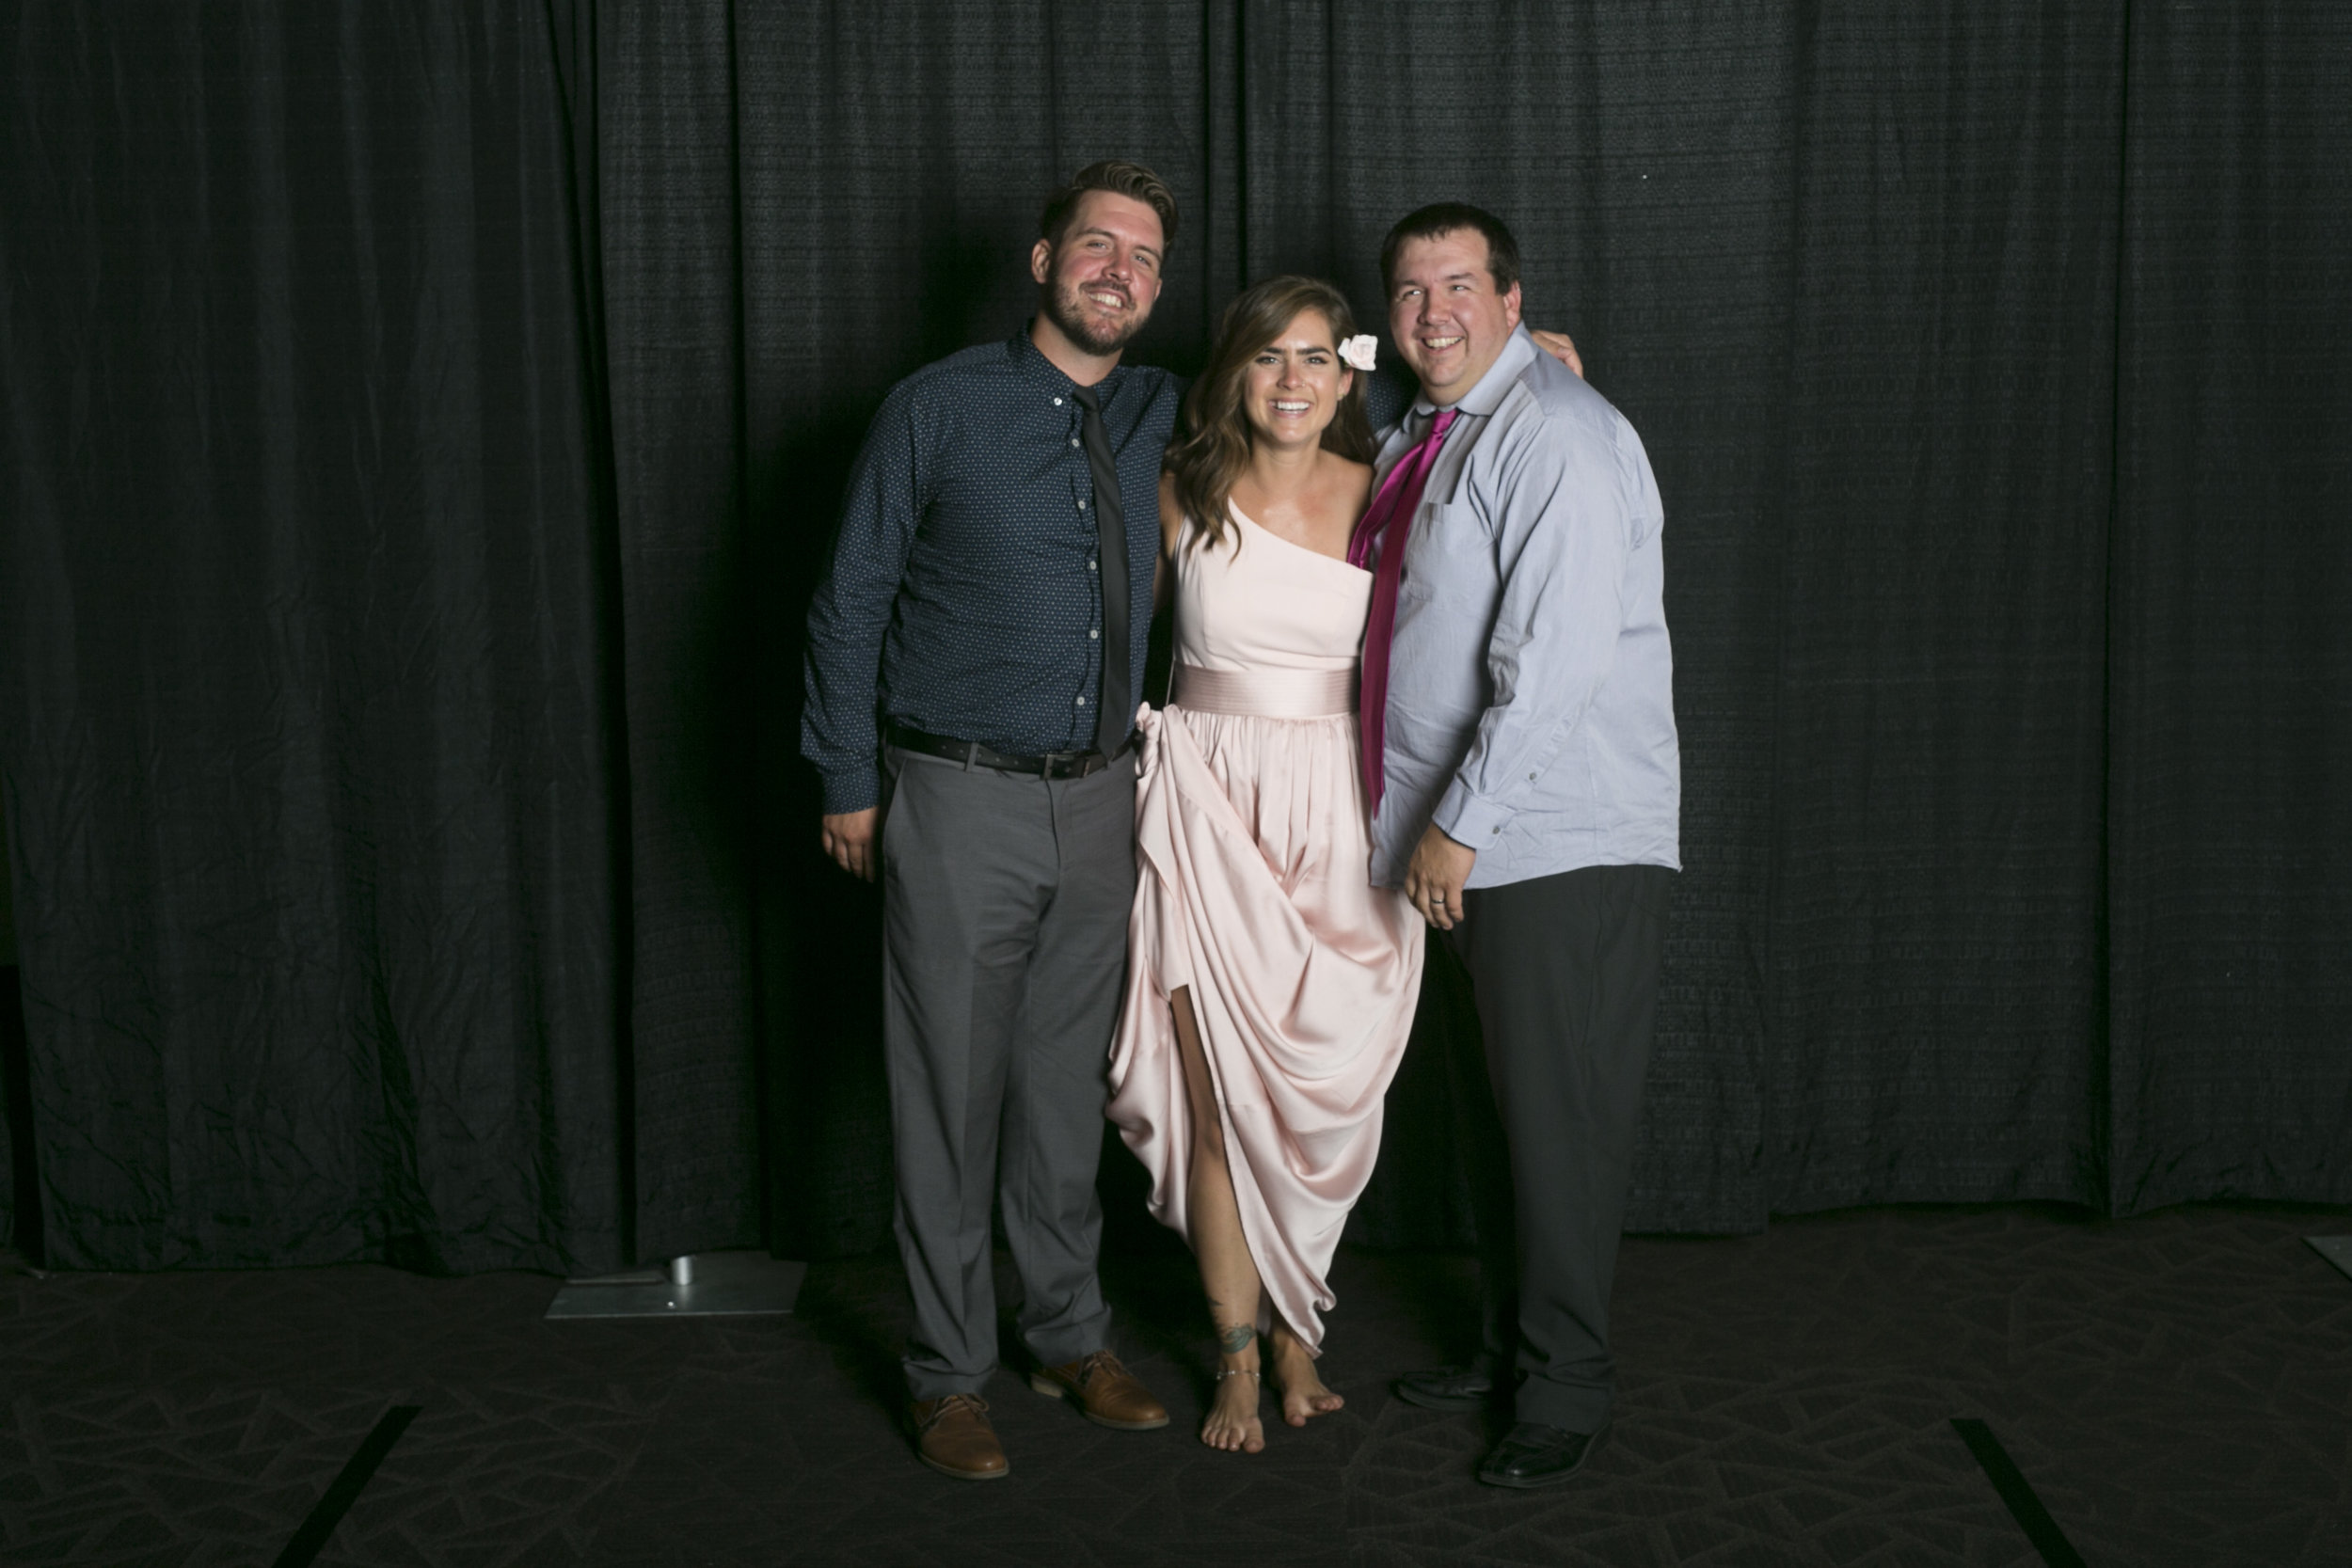 wedding photo booth-135.jpg